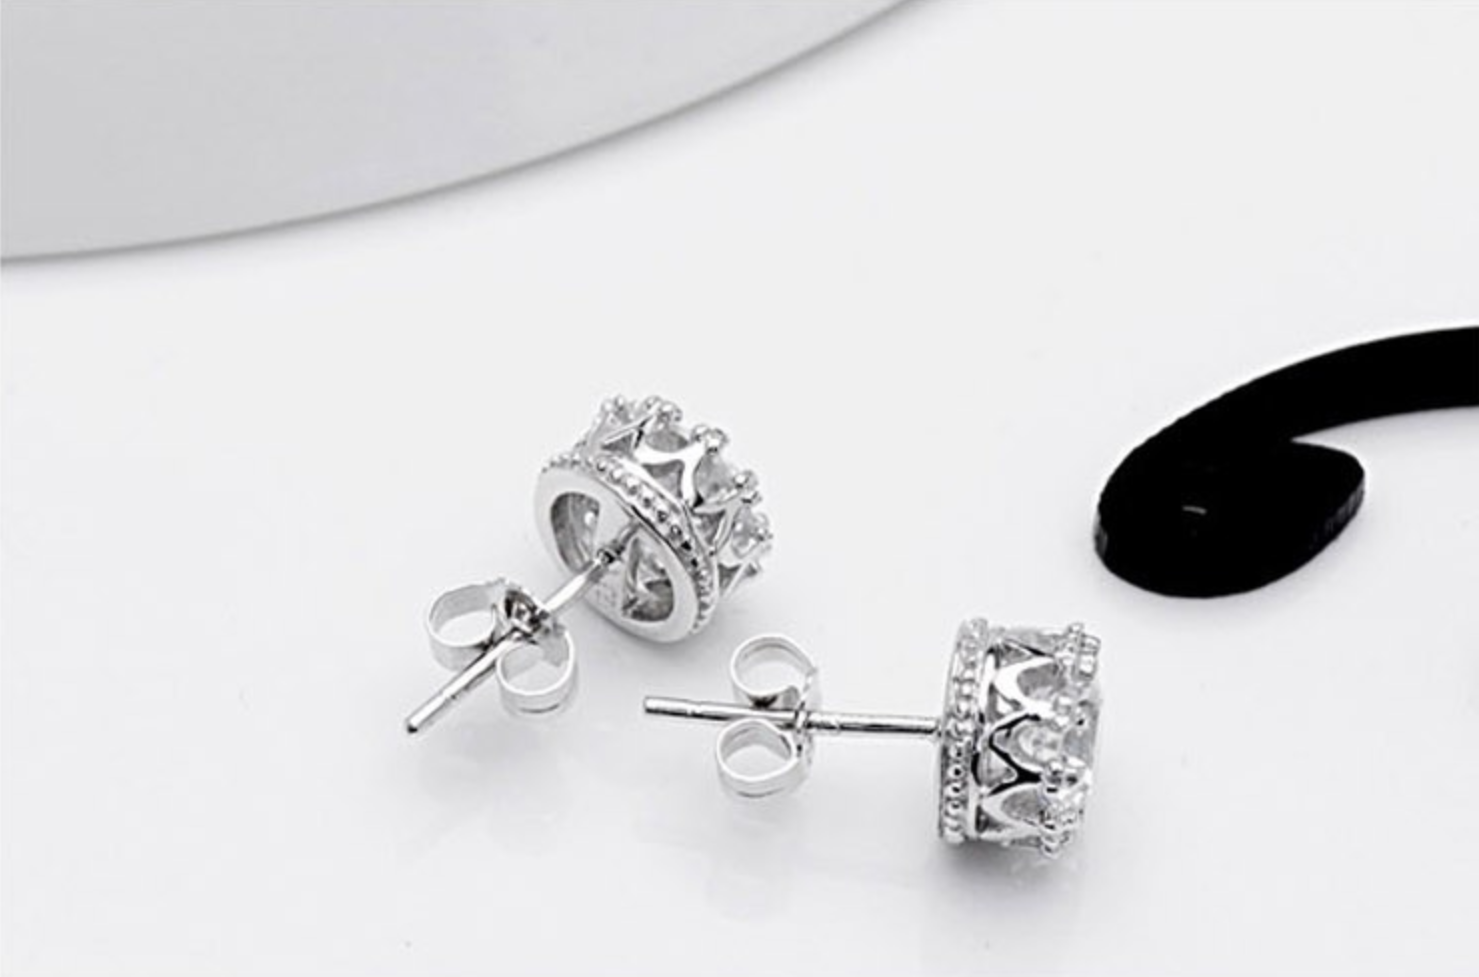 ferrari crash crown earrings stud jewelry modena products